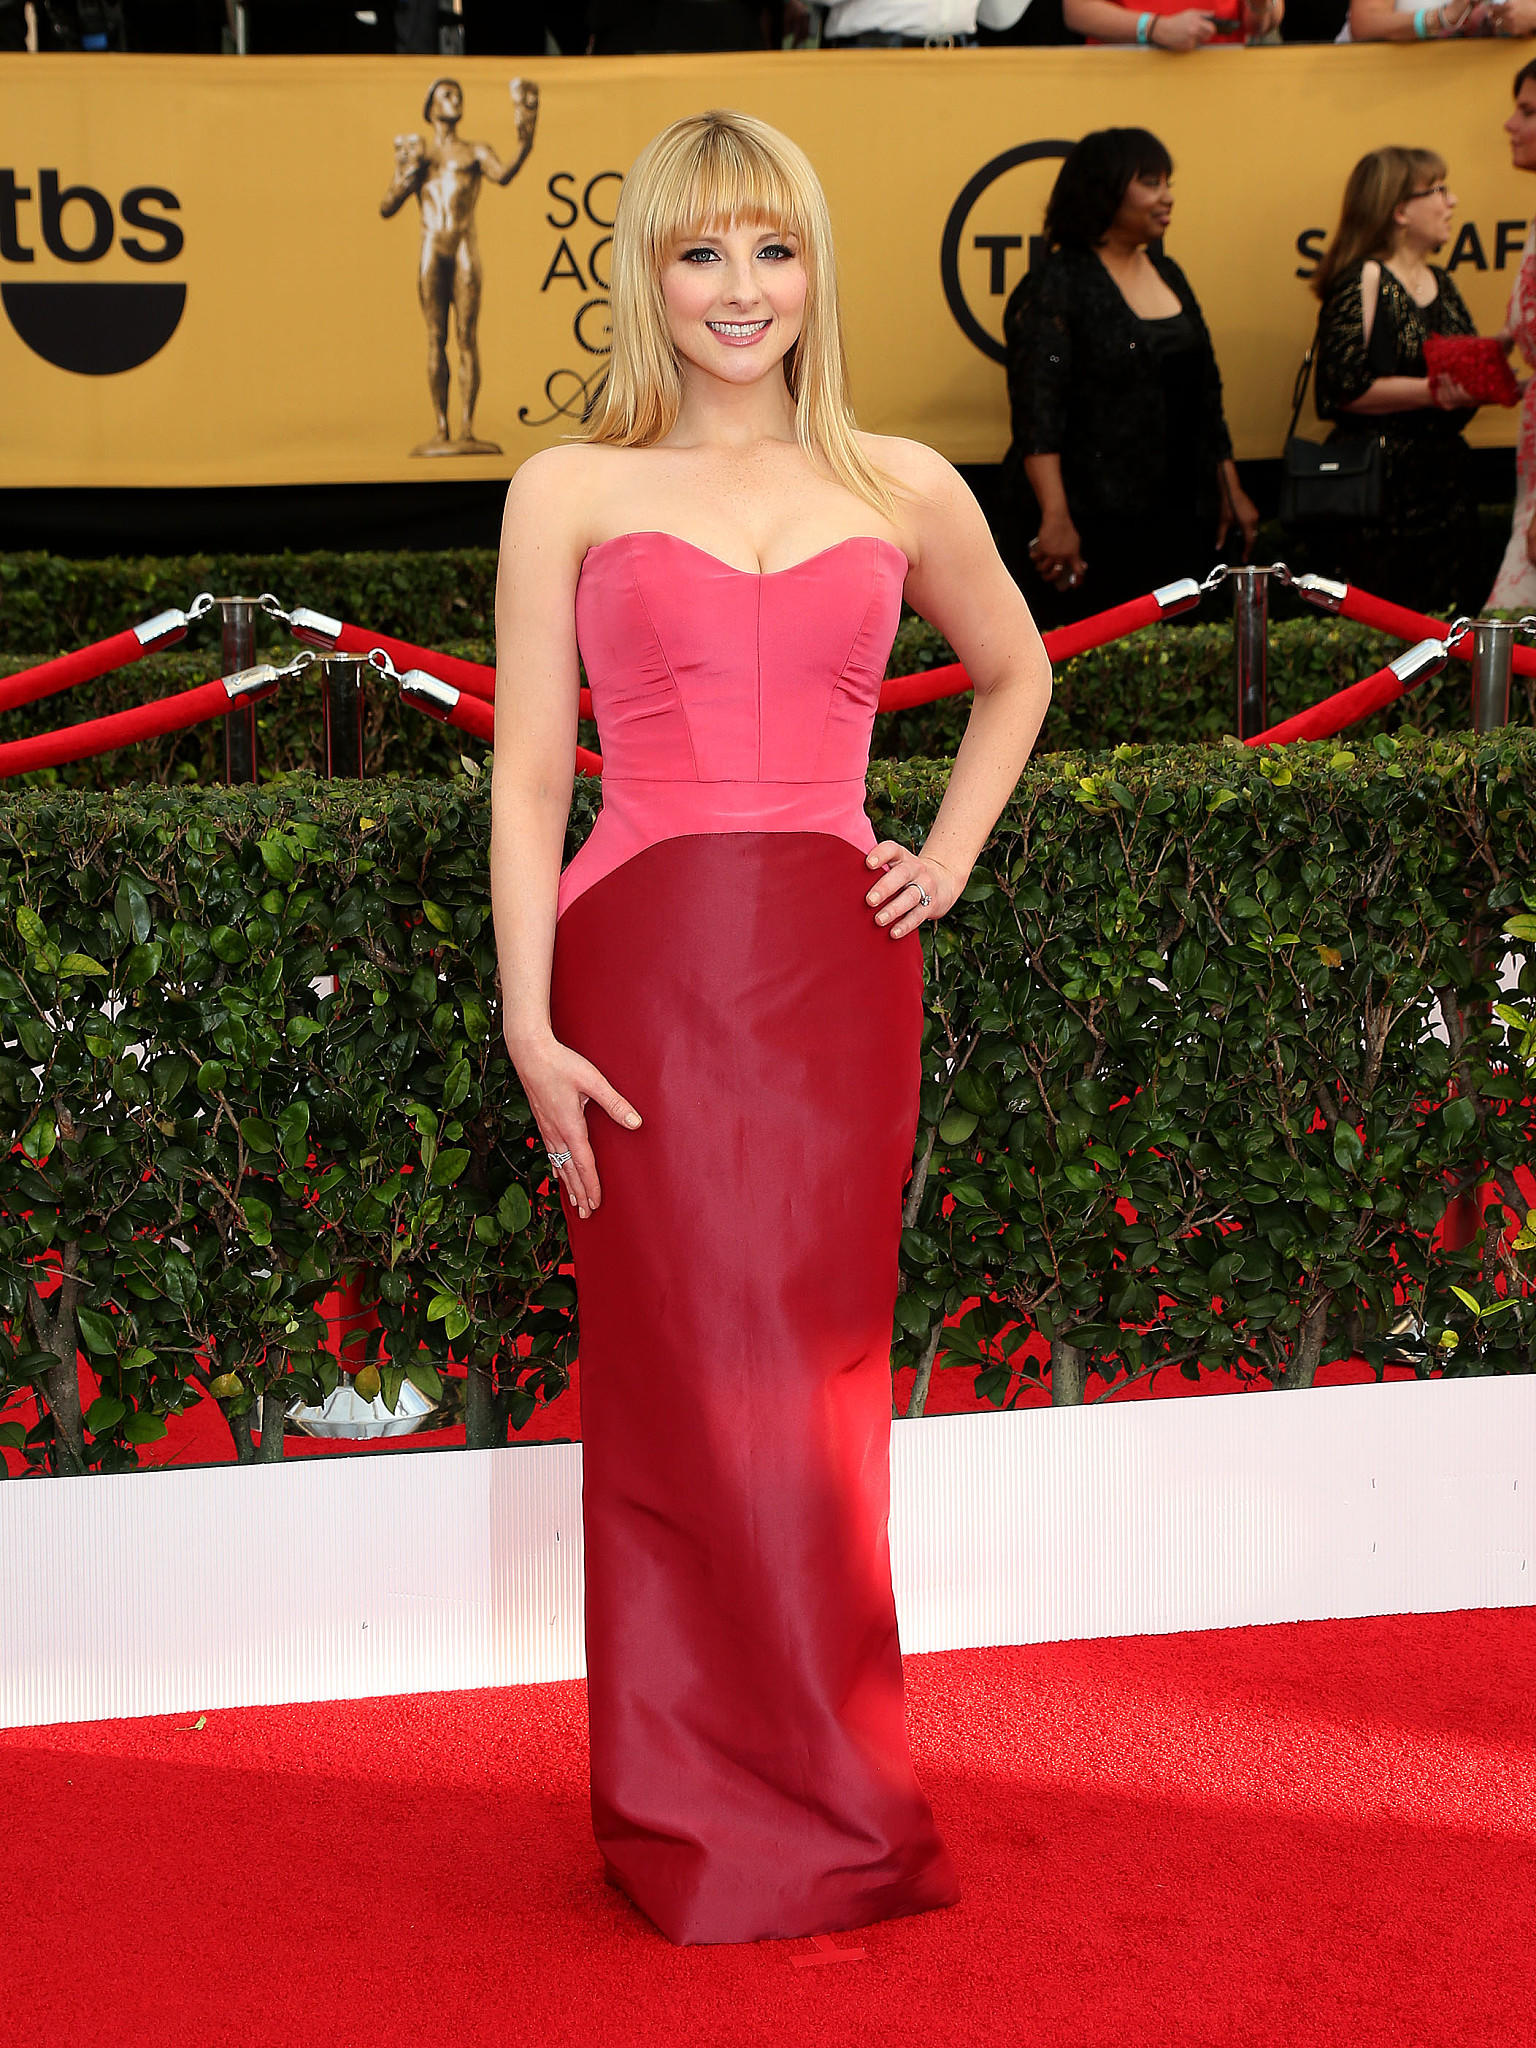 SAG Awards Award 2015 Big Bang Theory Roter Teppich Styling Kleider